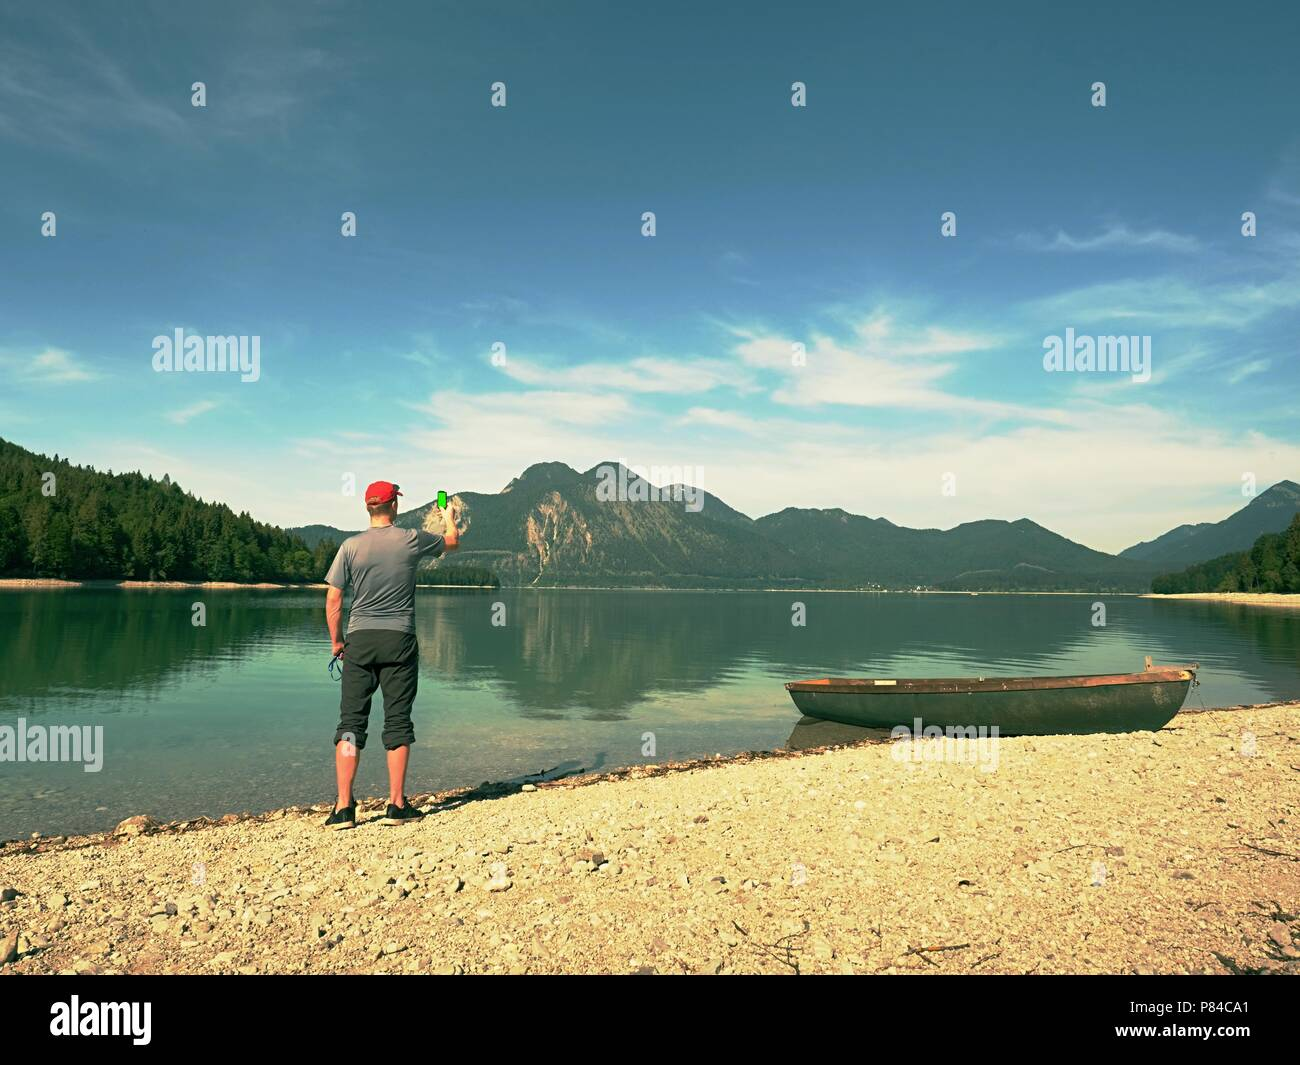 Photo traveler is taking memory photo of lake scenery. Blue lake between high mountains, peaks touch in blue sky. Travel lifestyle concept - Stock Image